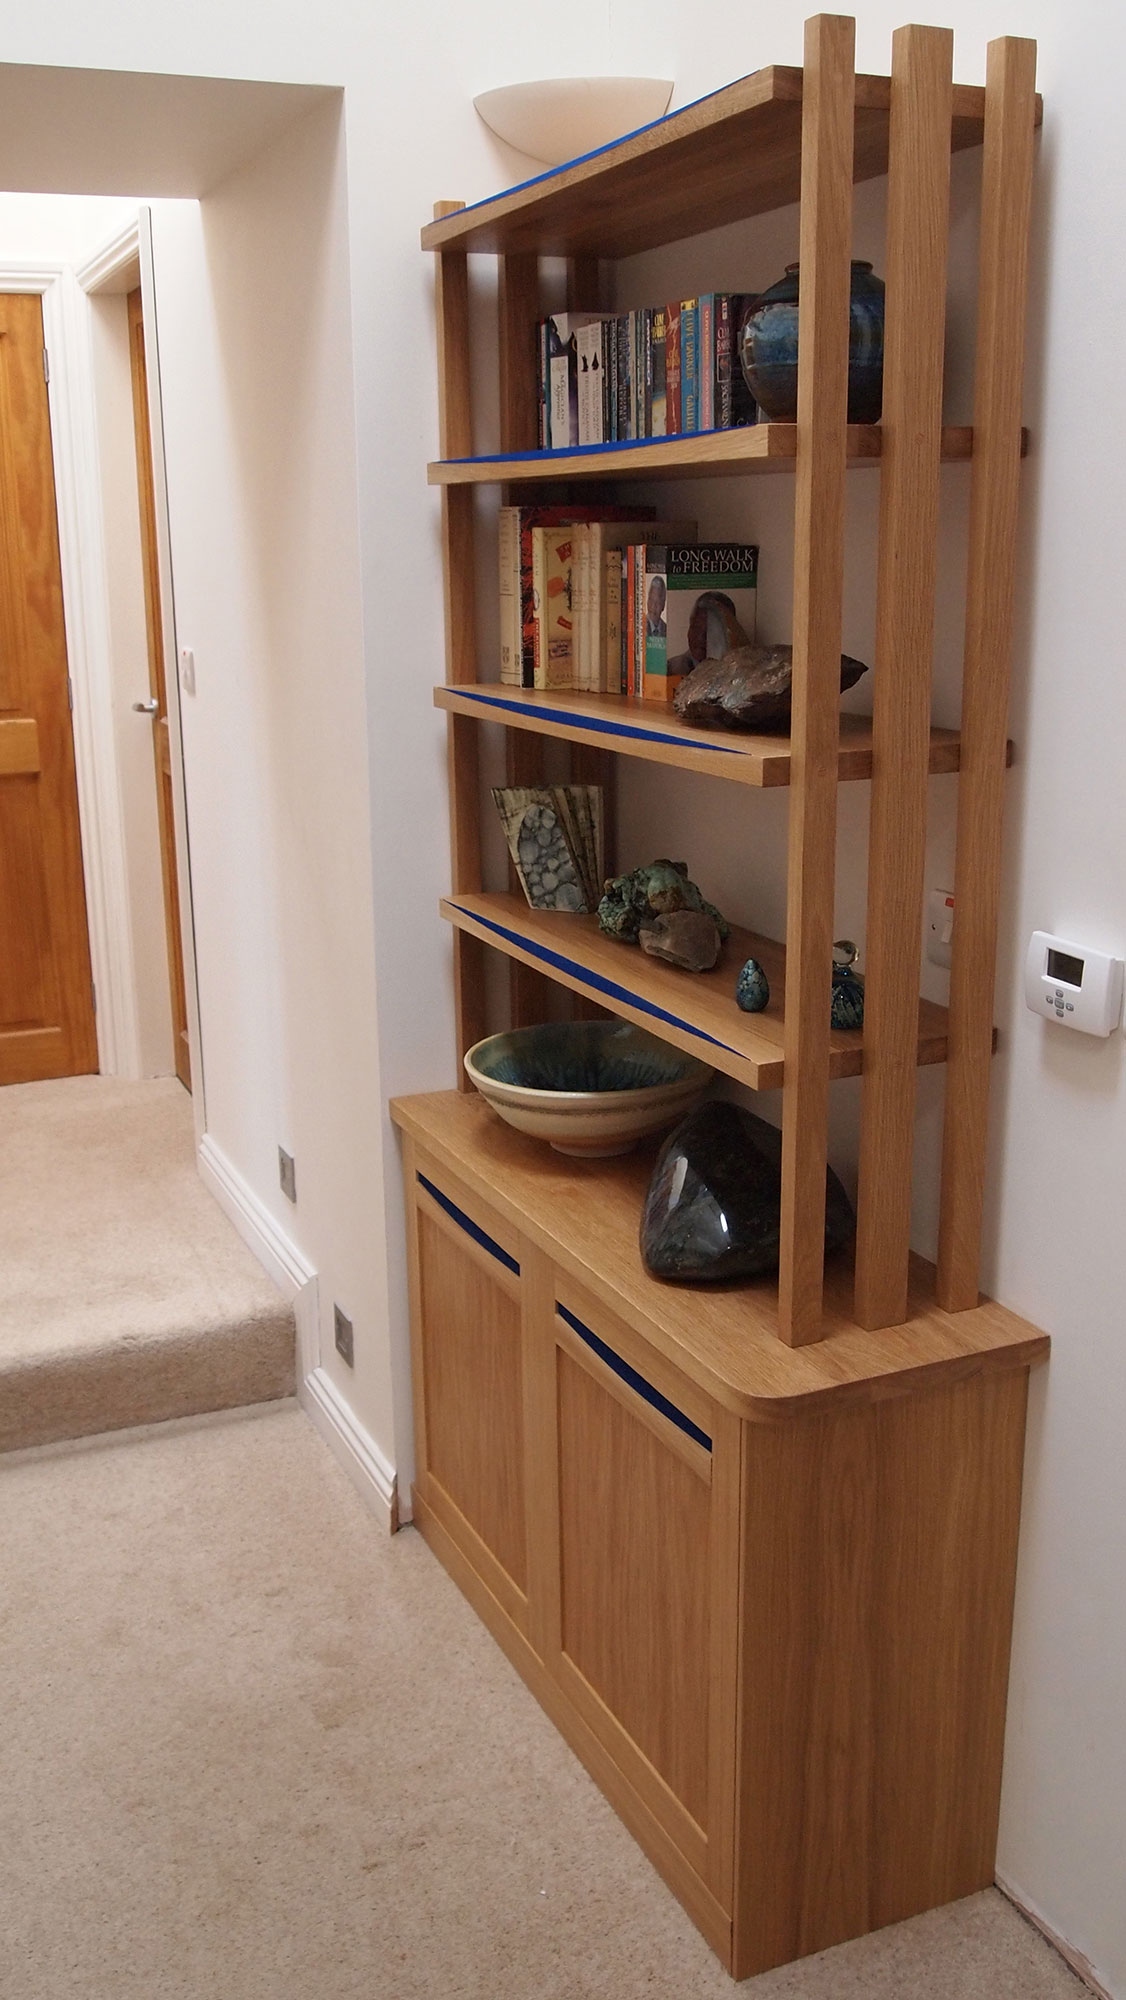 Fitted cabinet/shelves